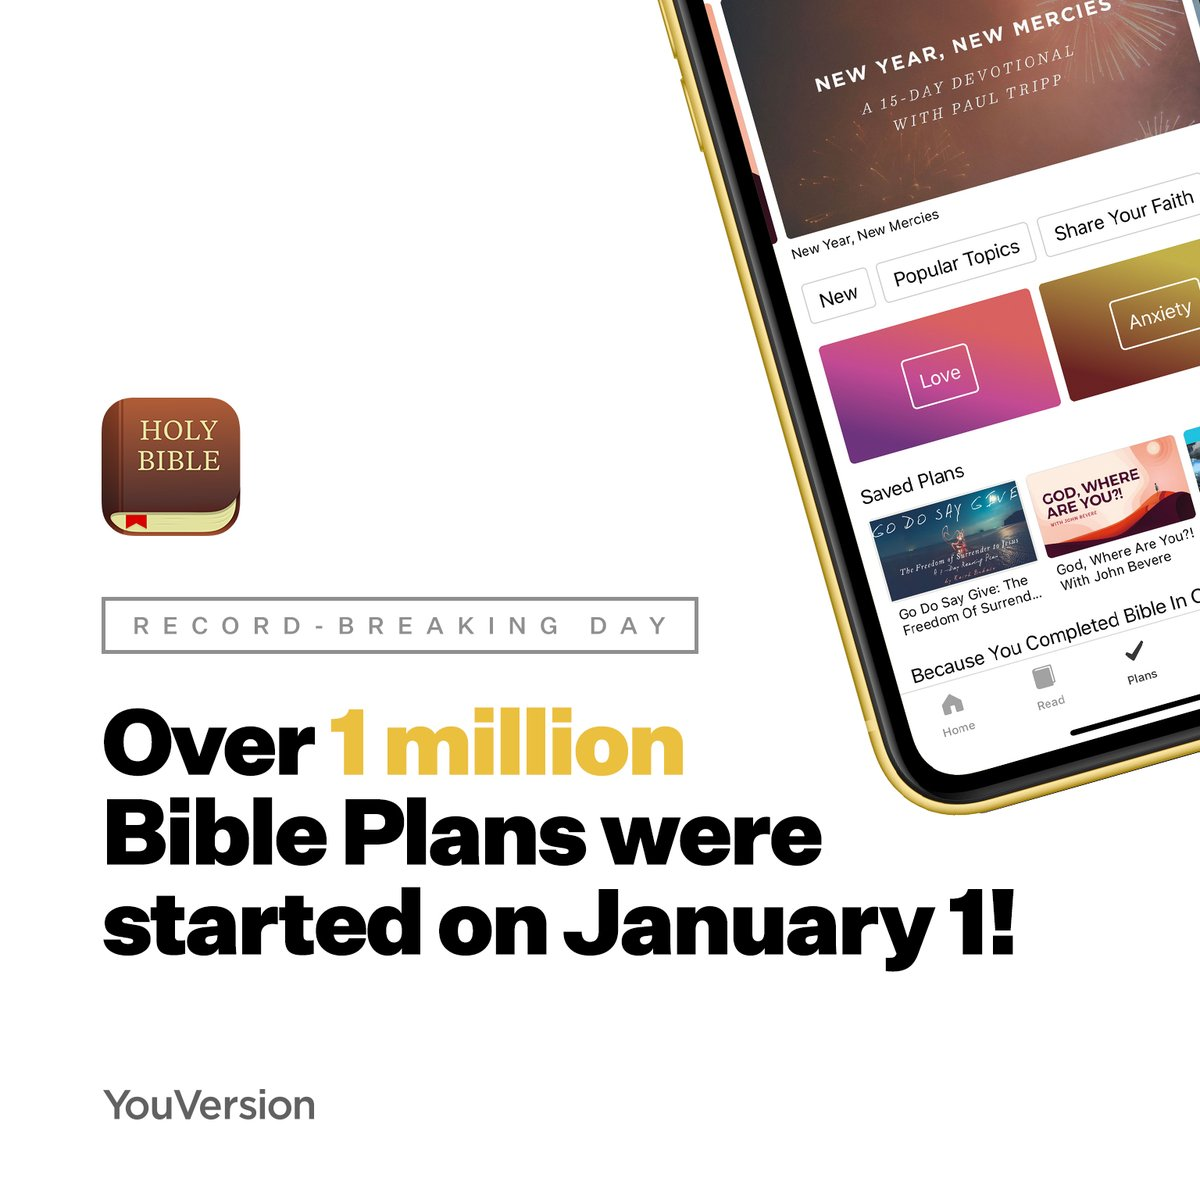 YouVersion App's Bible Plans Get Over 1 Million Subscriptions on